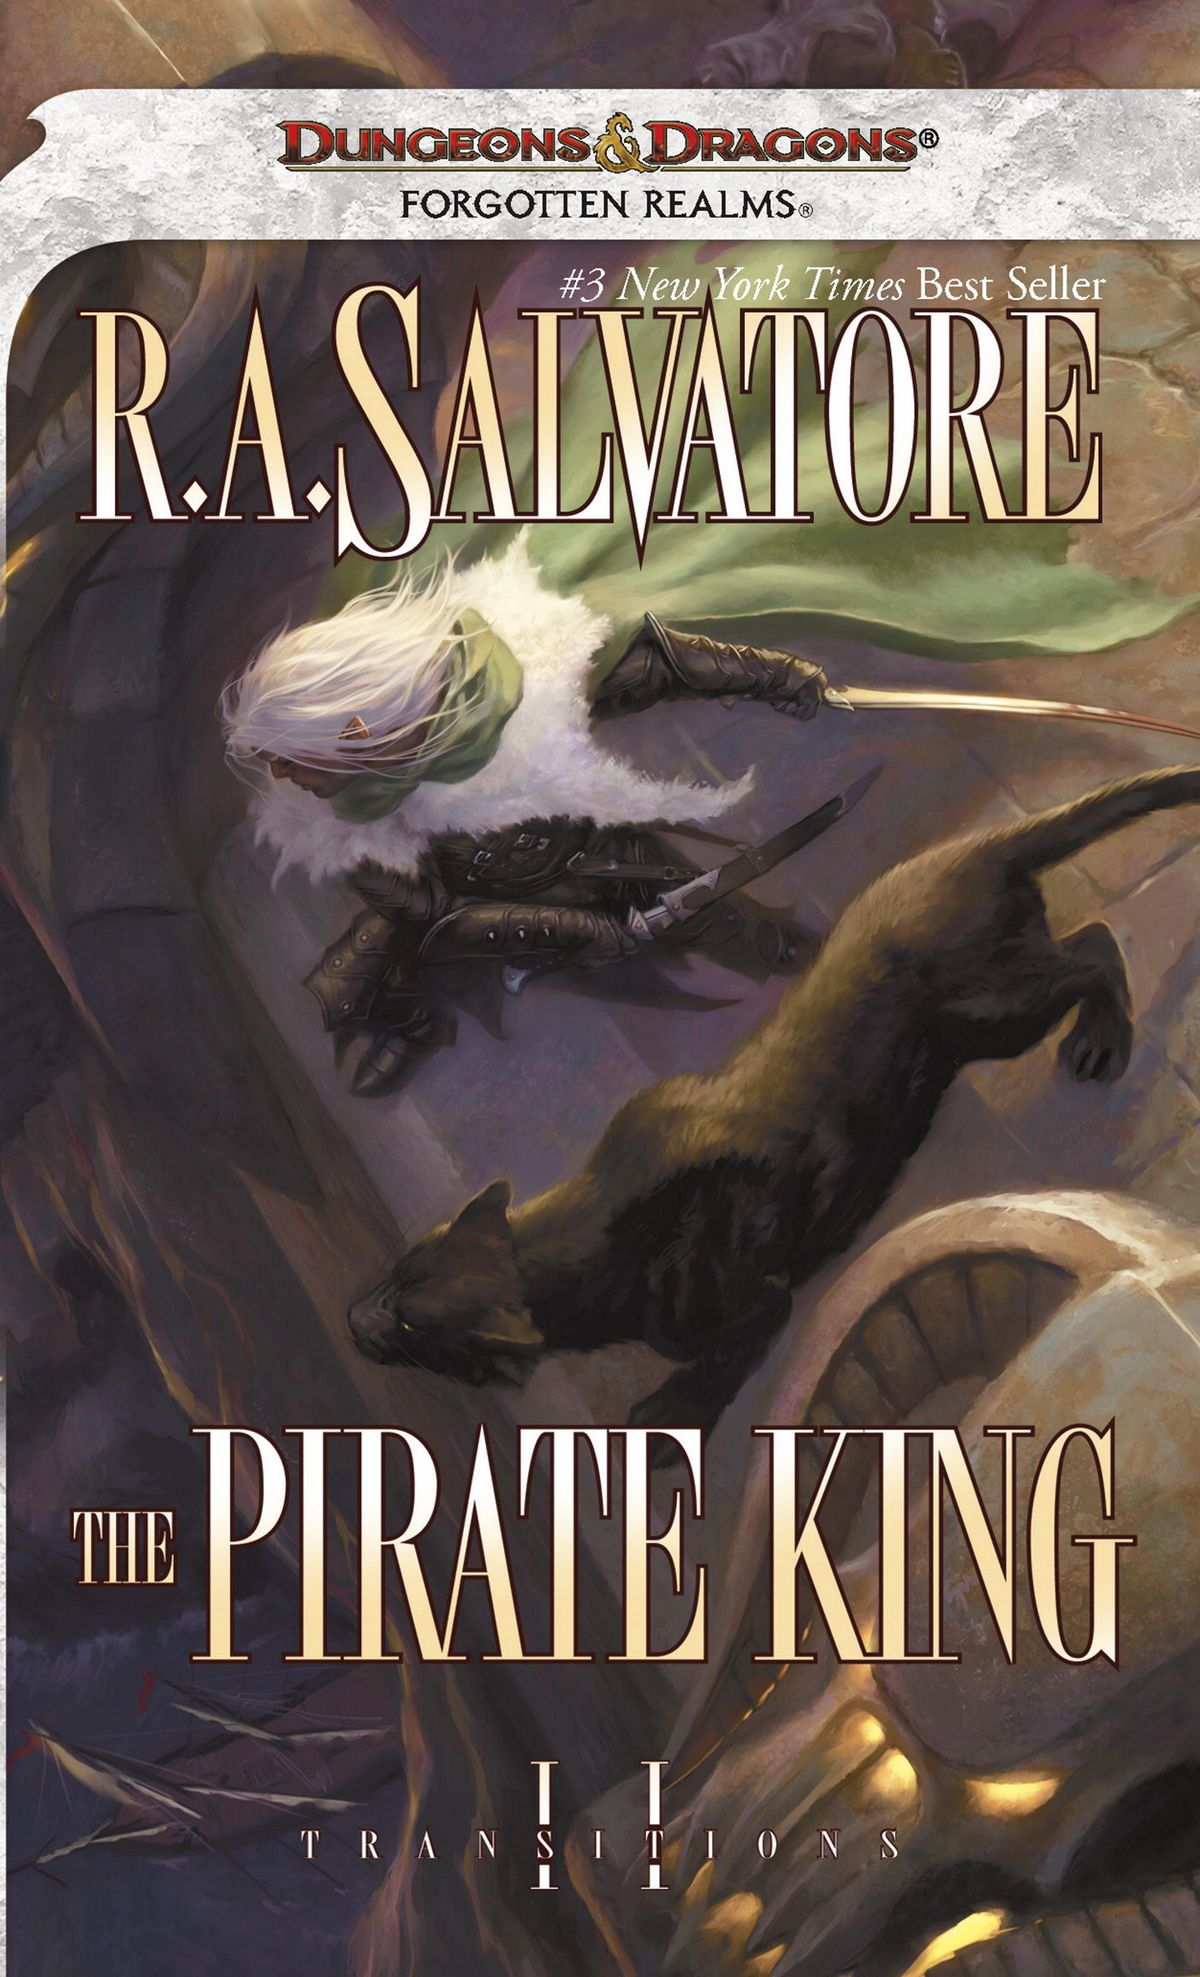 The Pirate King | Forgotten Realms Wiki | FANDOM powered by Wikia